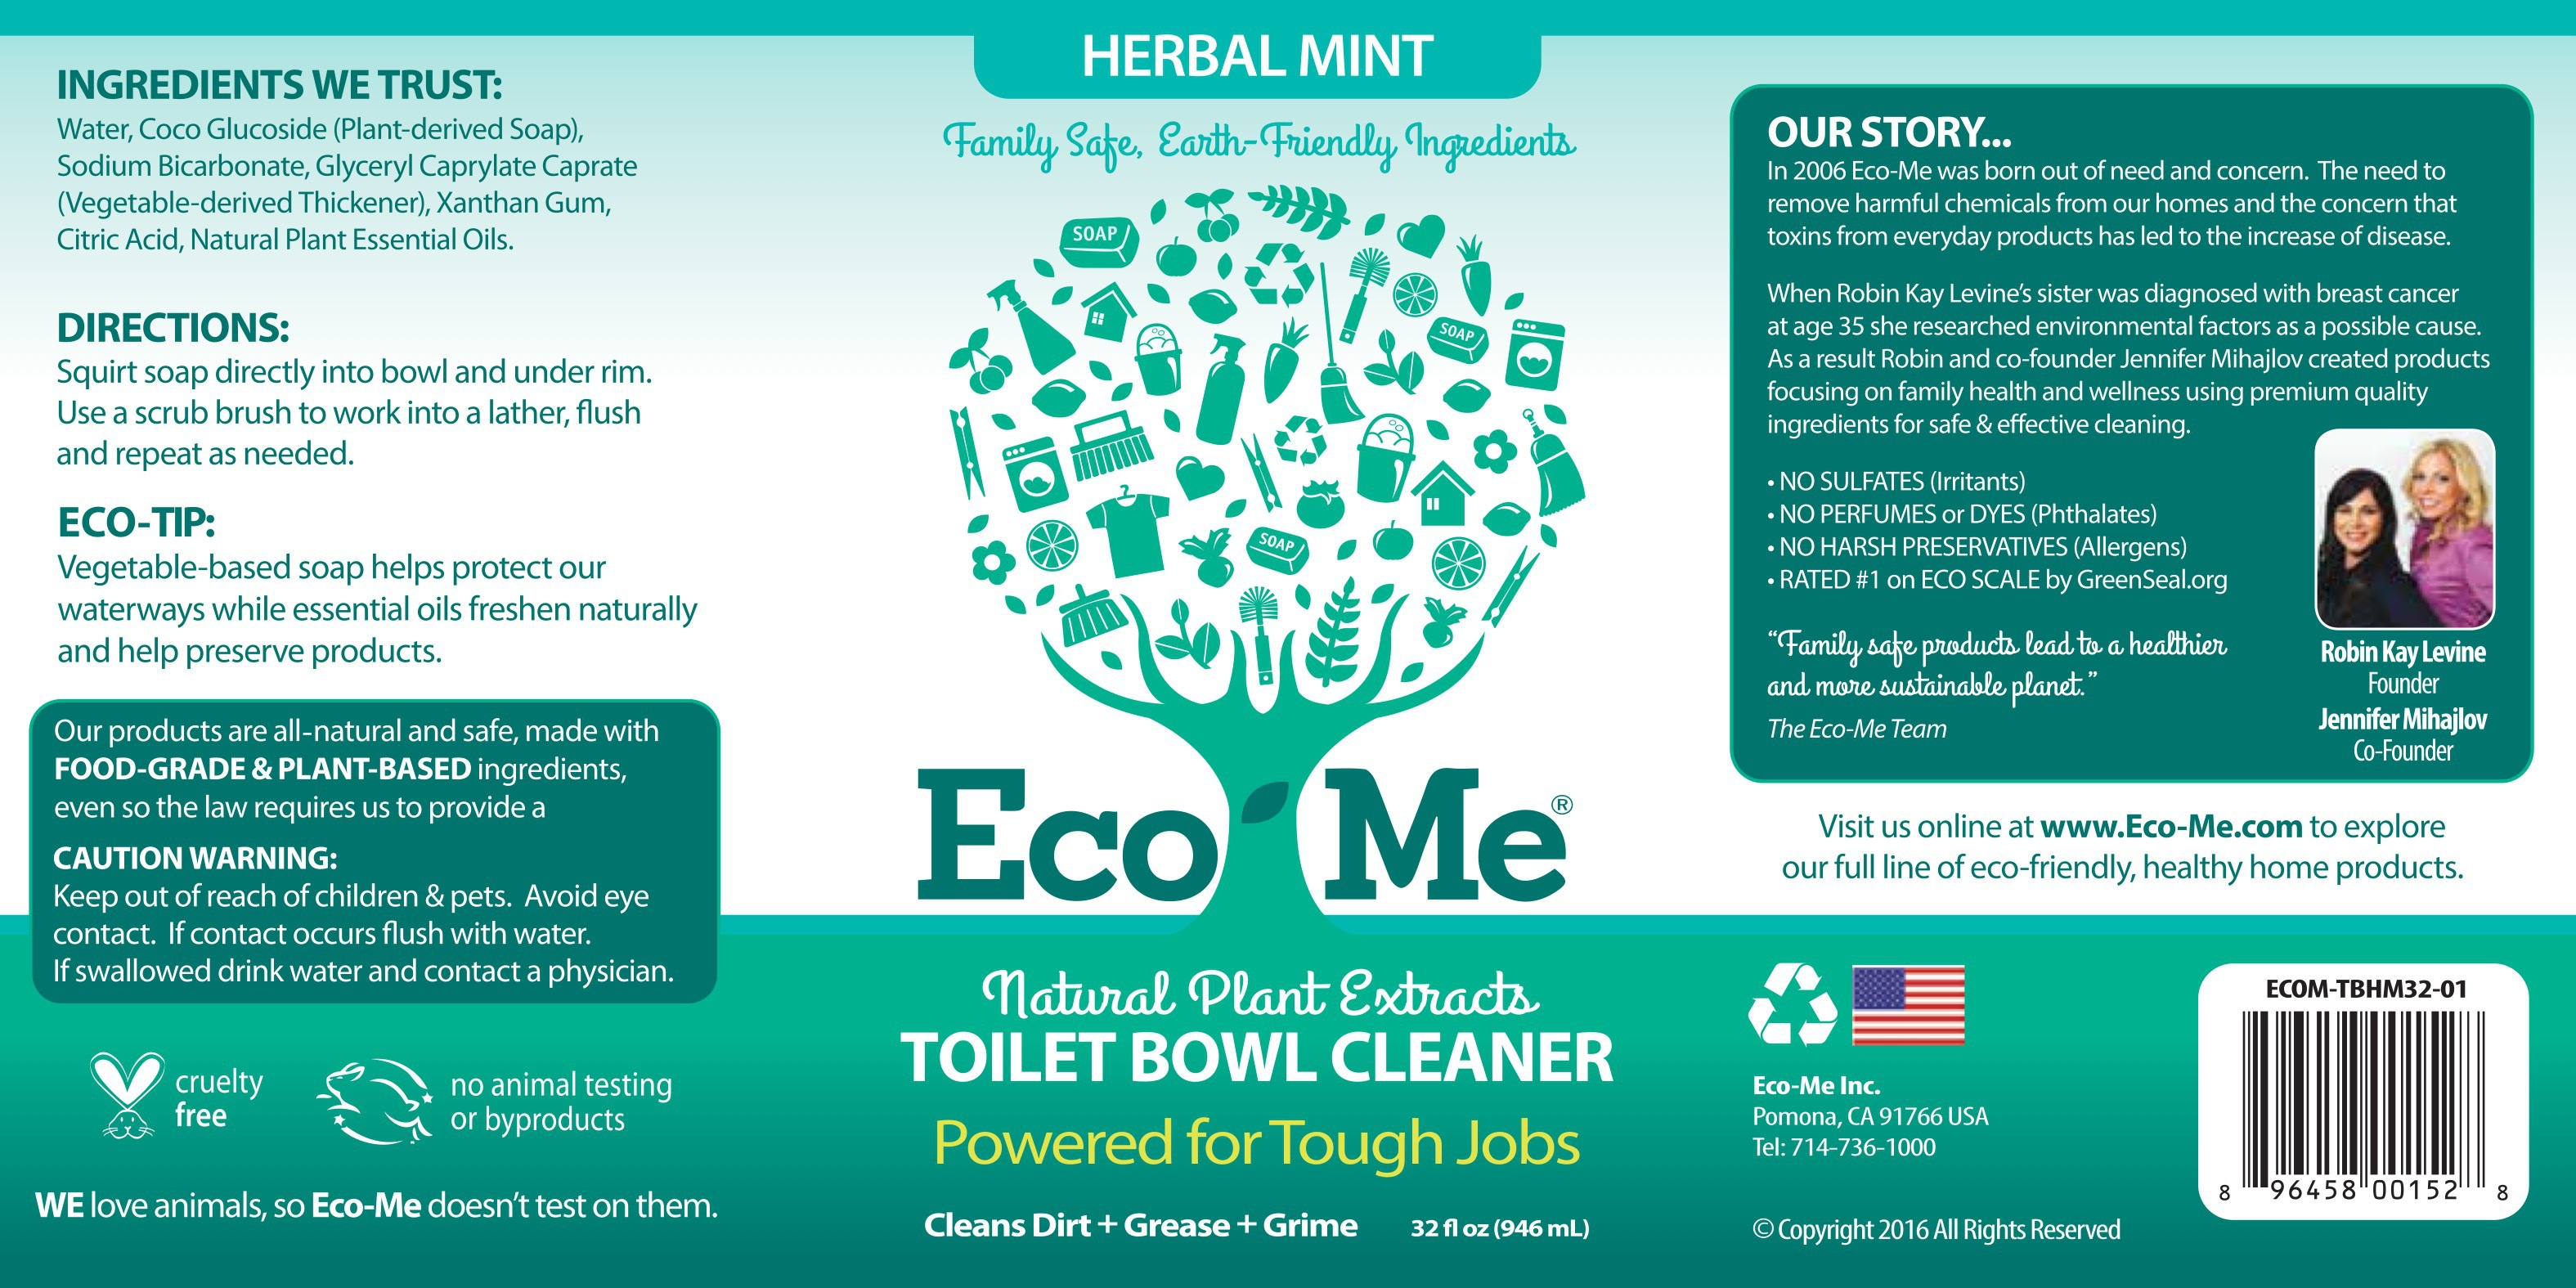 Toilet Bowl Cleaner   The Natural Products Brands Directory